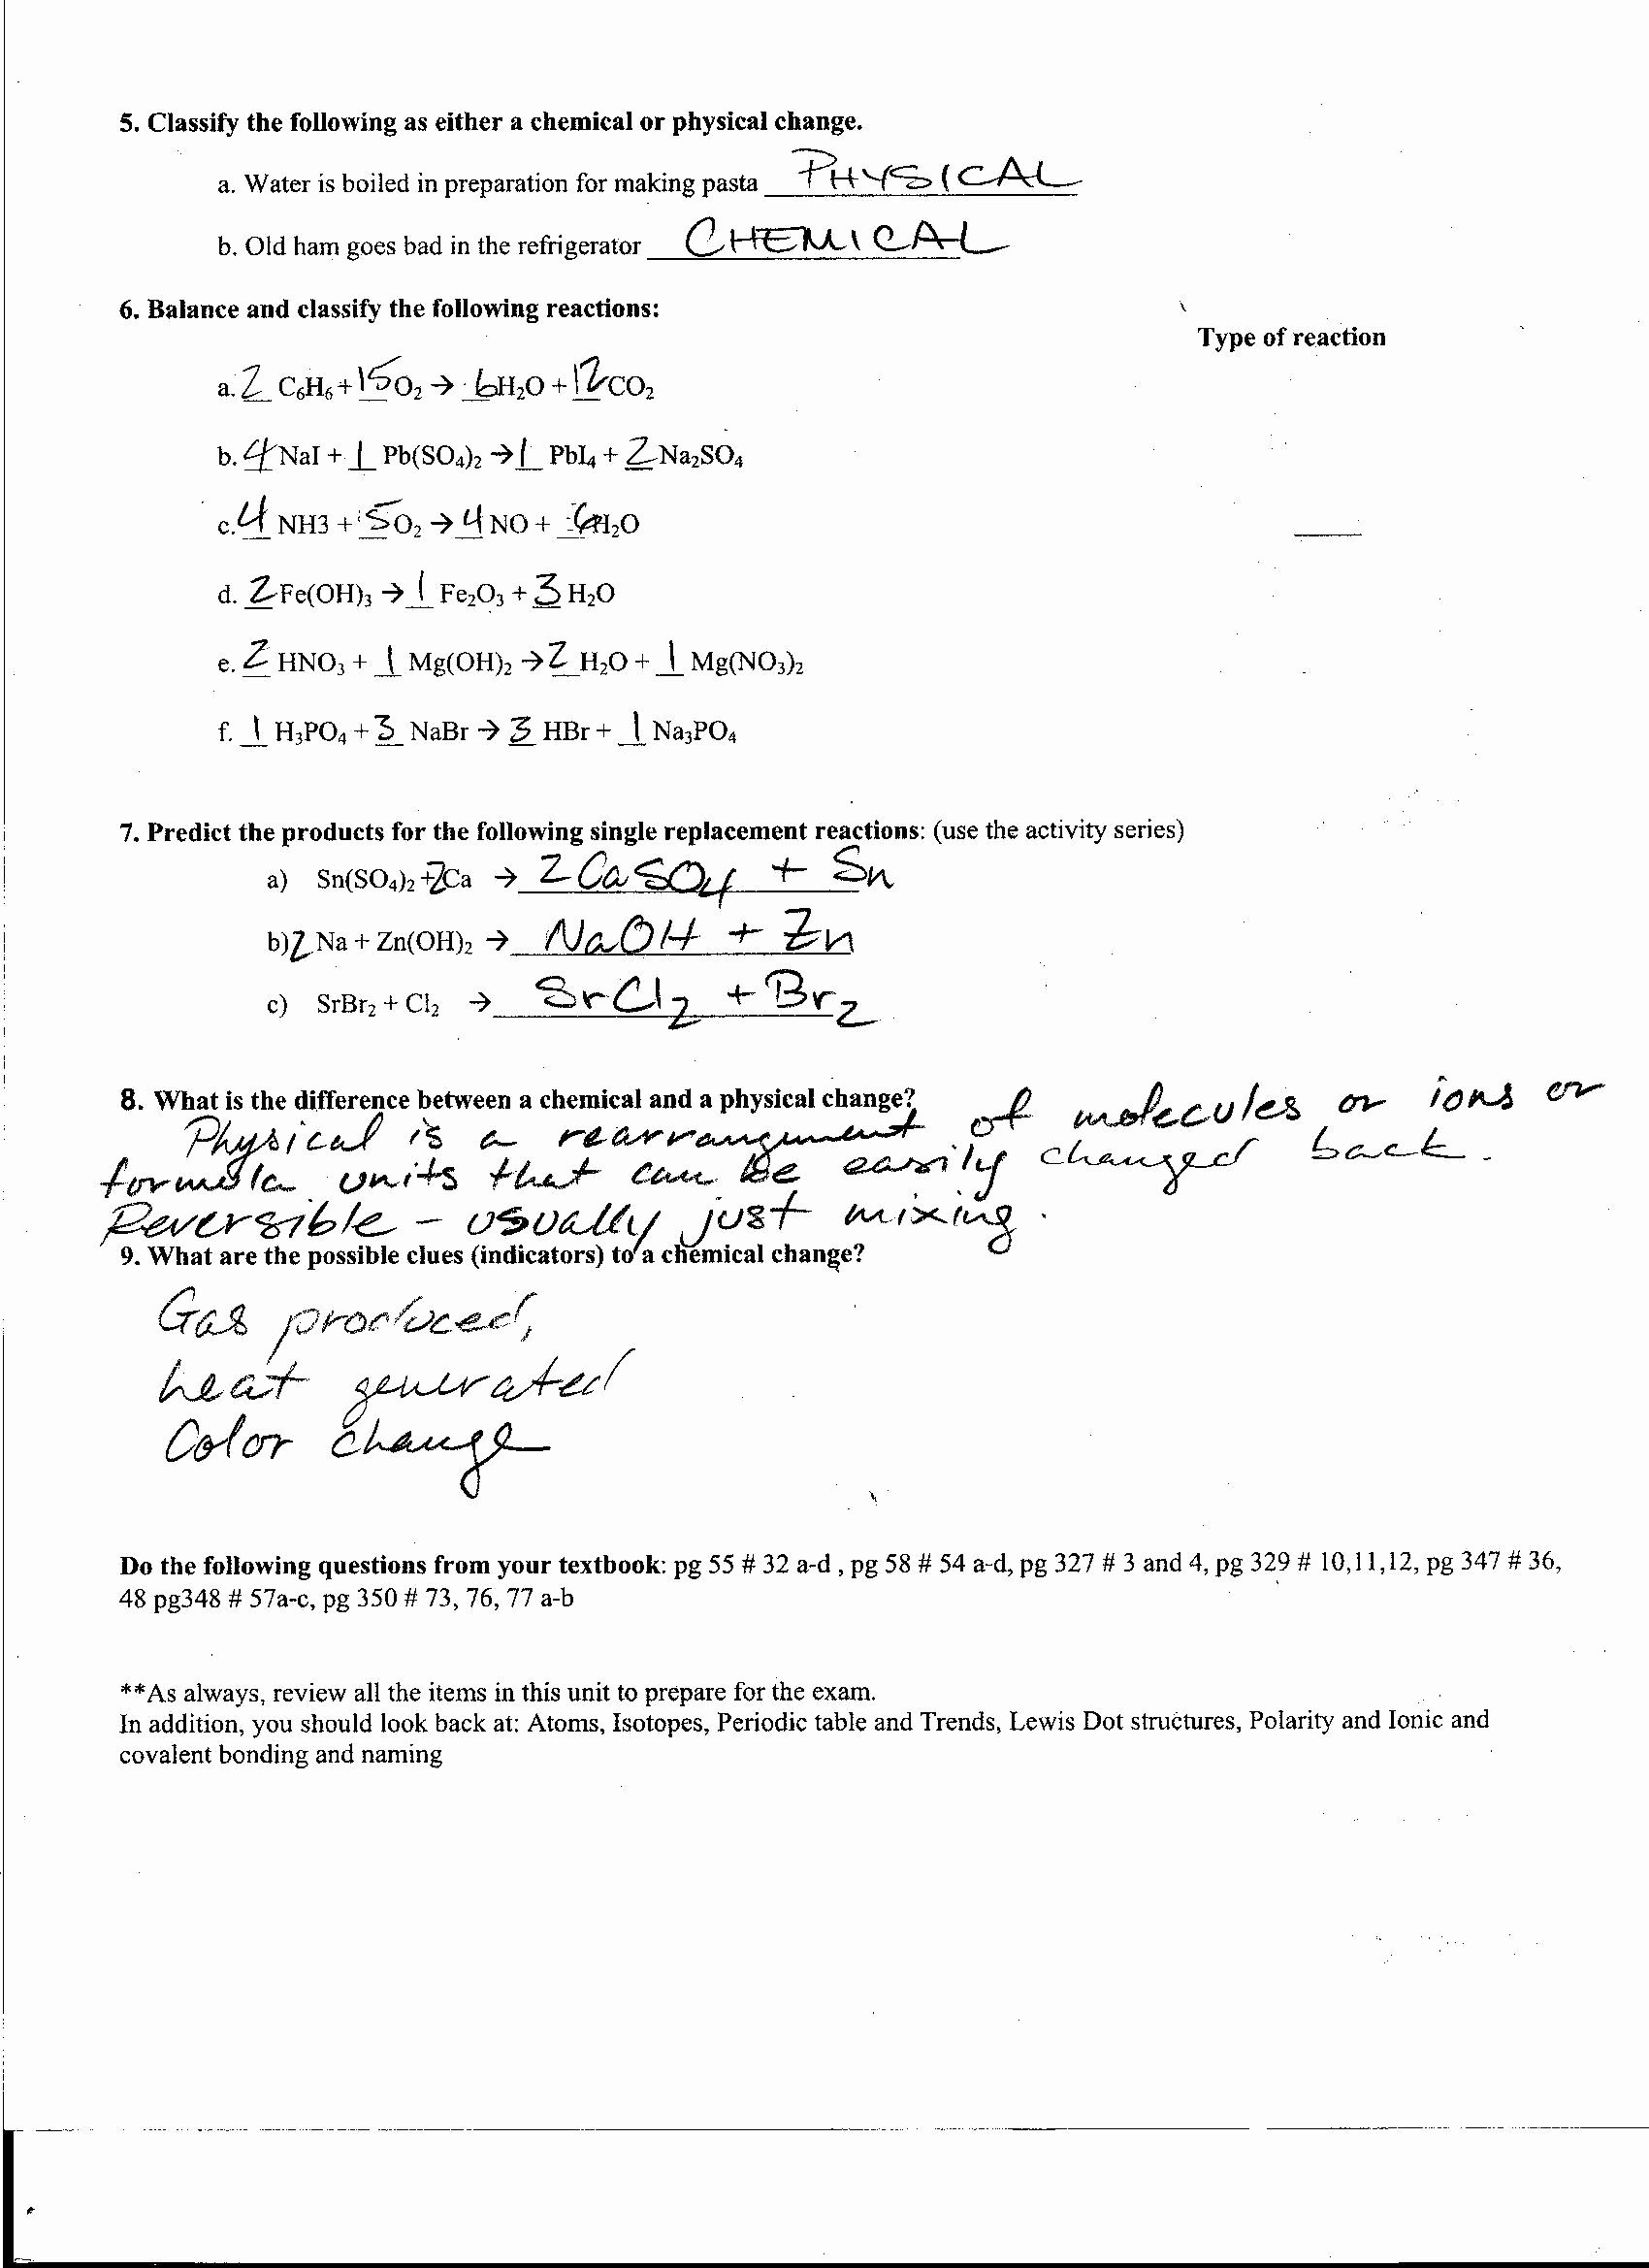 Worksheet Electron Dot Diagrams And Lewis Structures Answers By6u Di 2020